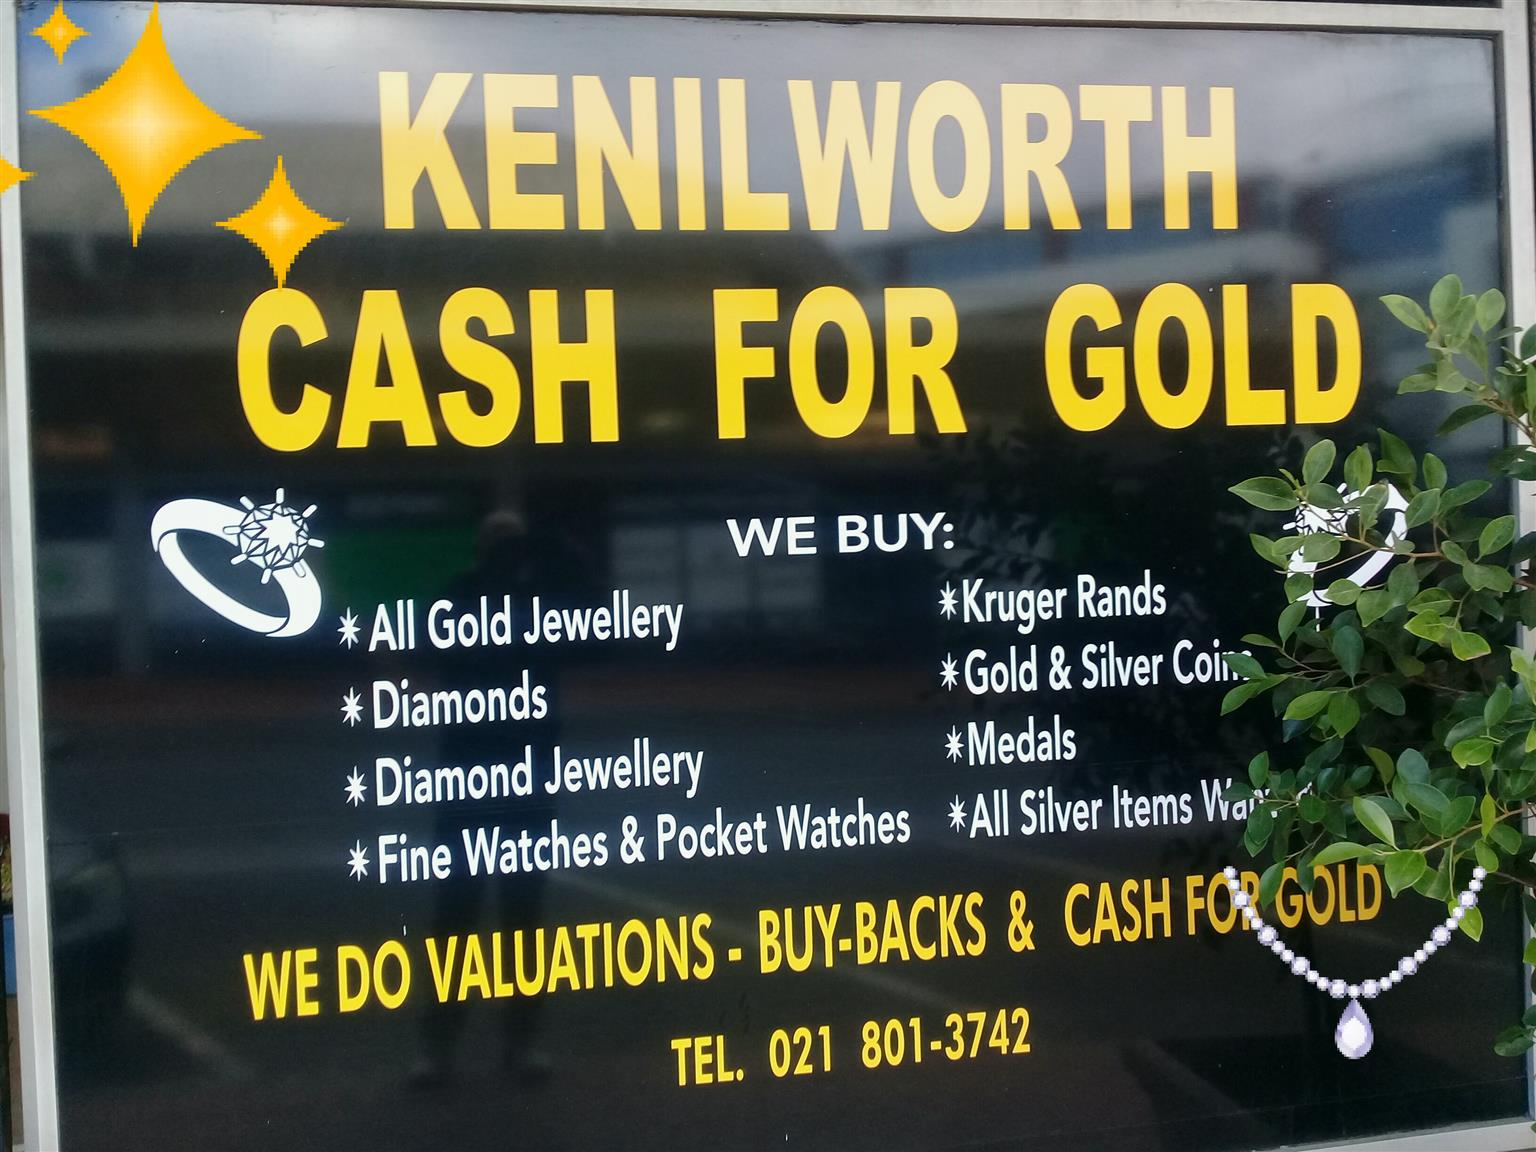 cash 4 gold Kenilworth gold exchange